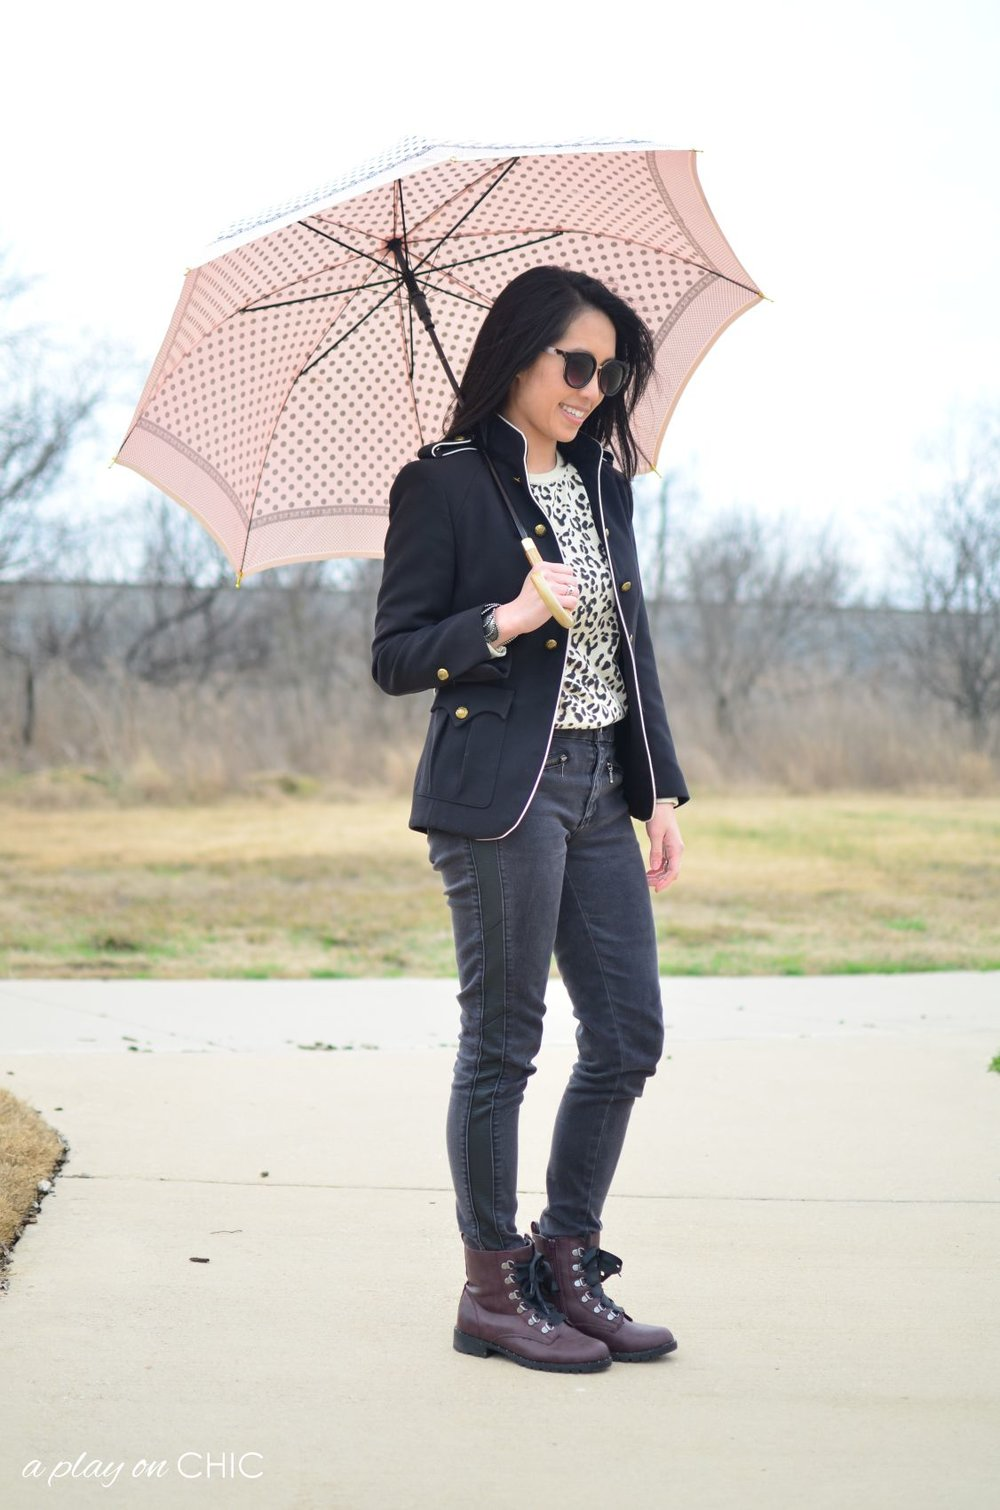 Rainy-Day-Outfit-Essentials-59.jpg